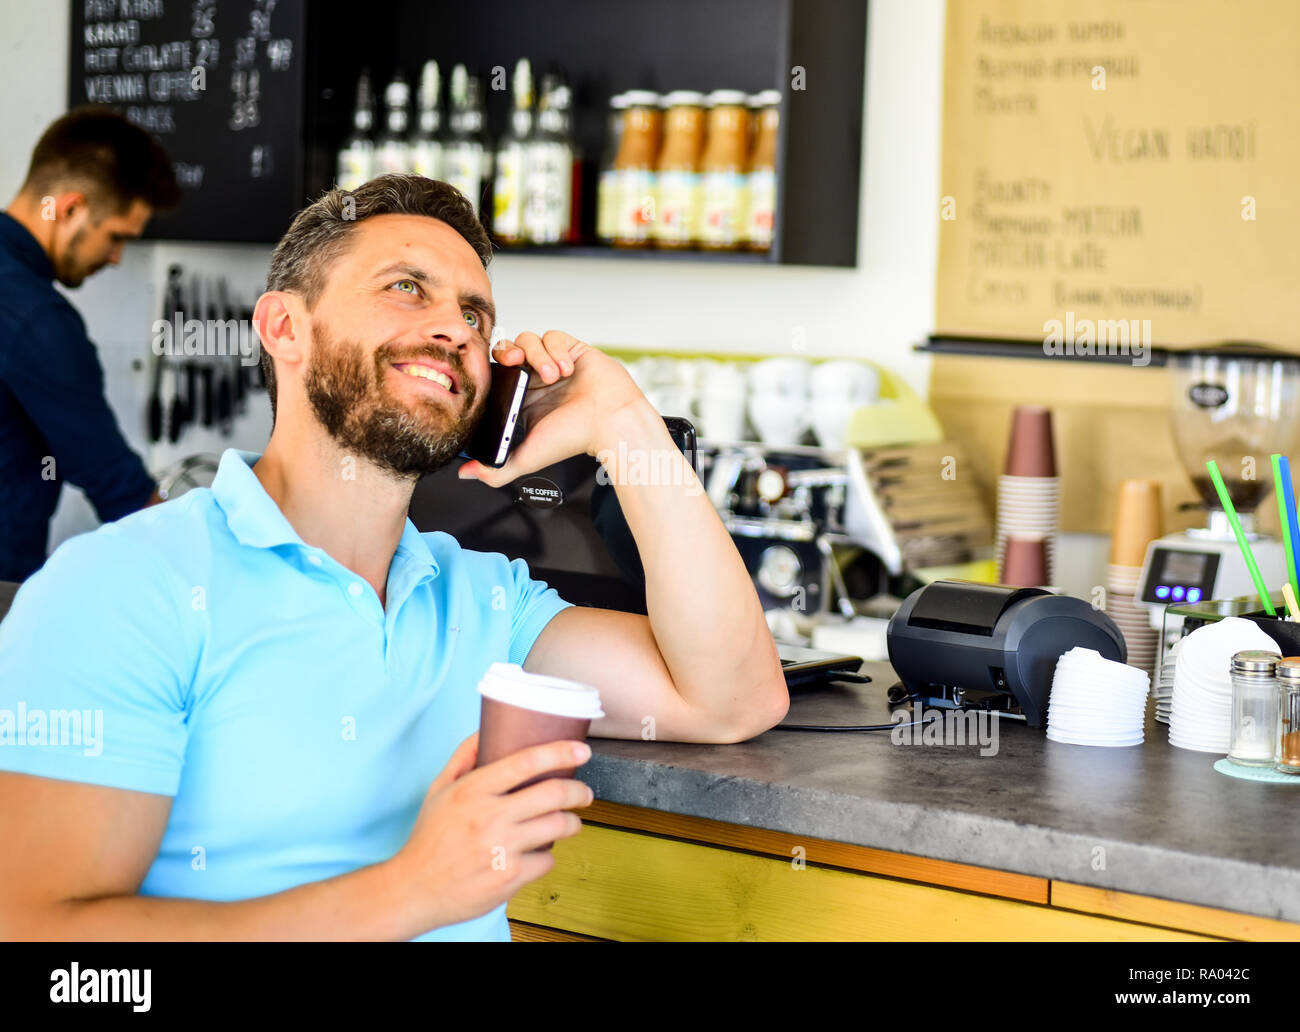 Coffee take away option for busy people. Man mobile conversation cafe barista background. Drink coffee while waiting. Waiting for you. Man smartphone order coffee in cafe. Coffee break concept. - Stock Image